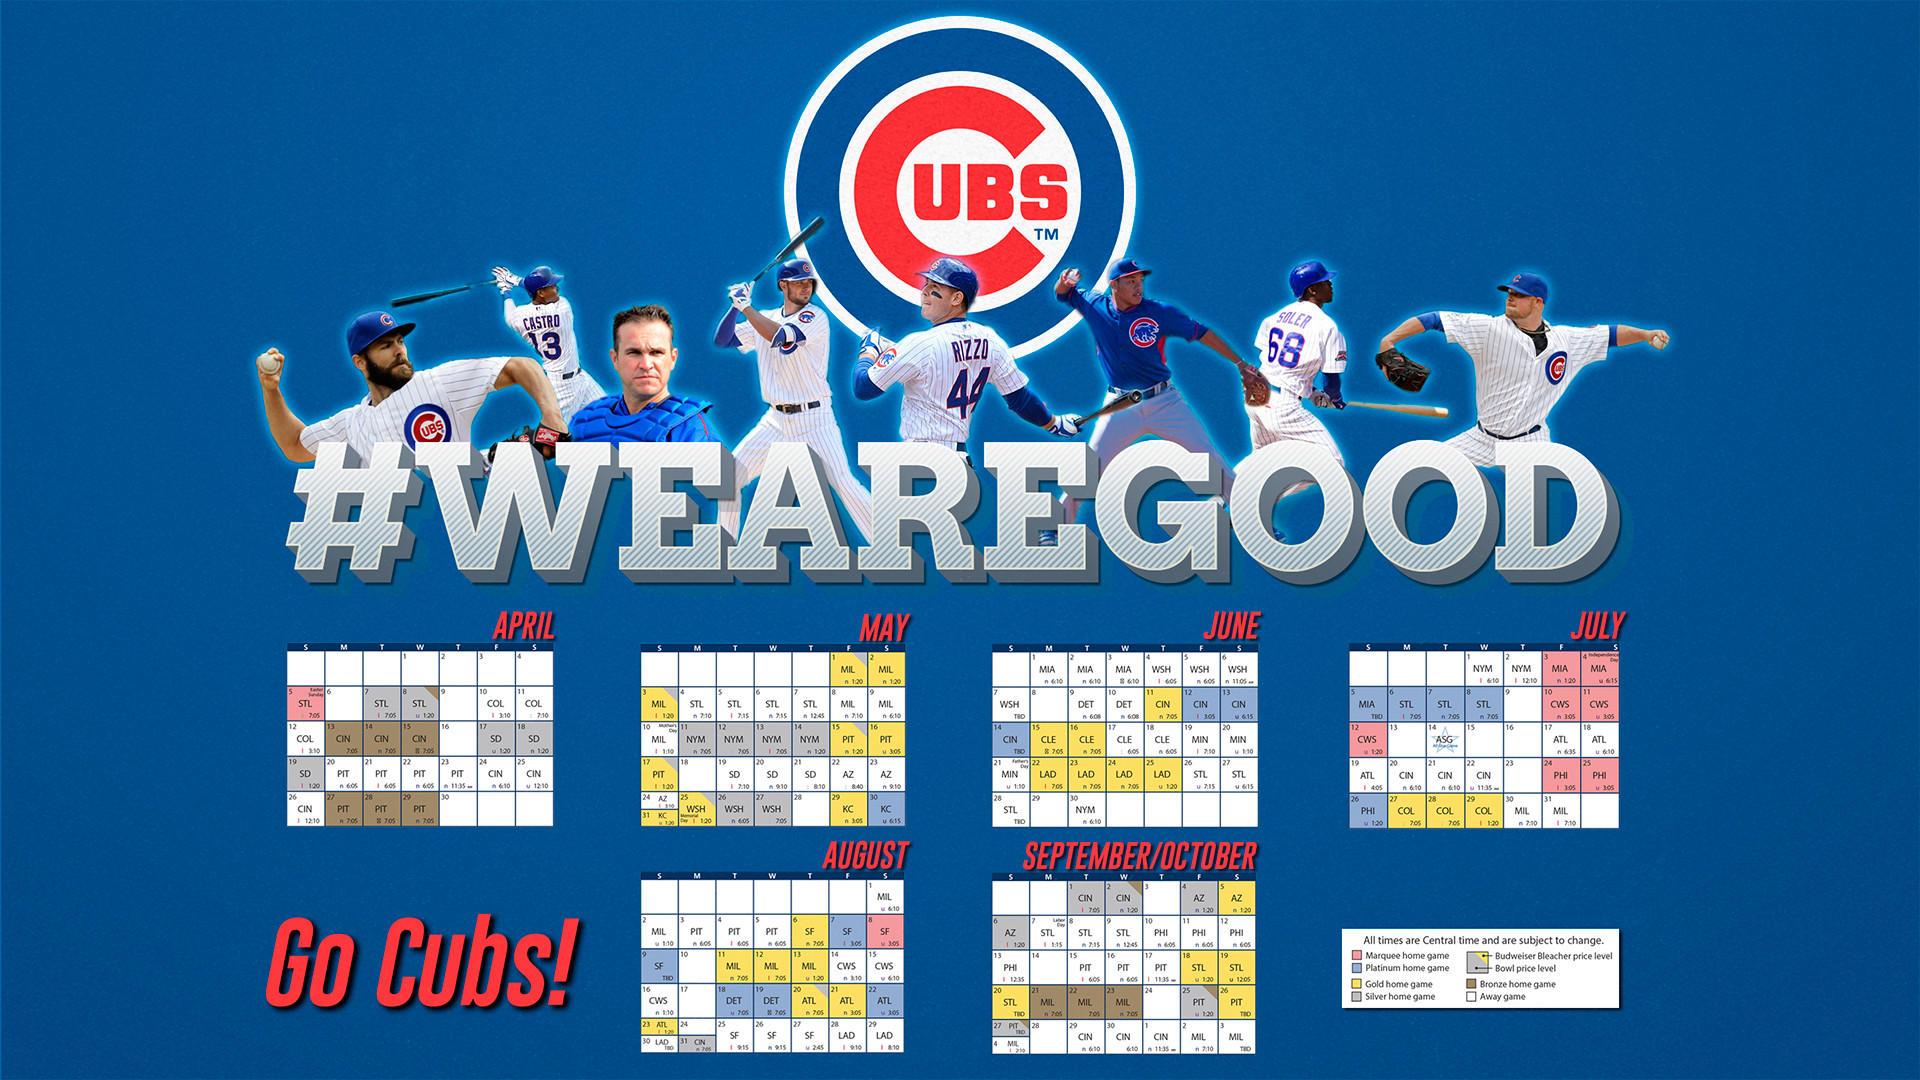 1920x1080 Chicago Cubs Schedule Wallpaper - WallpaperSafari